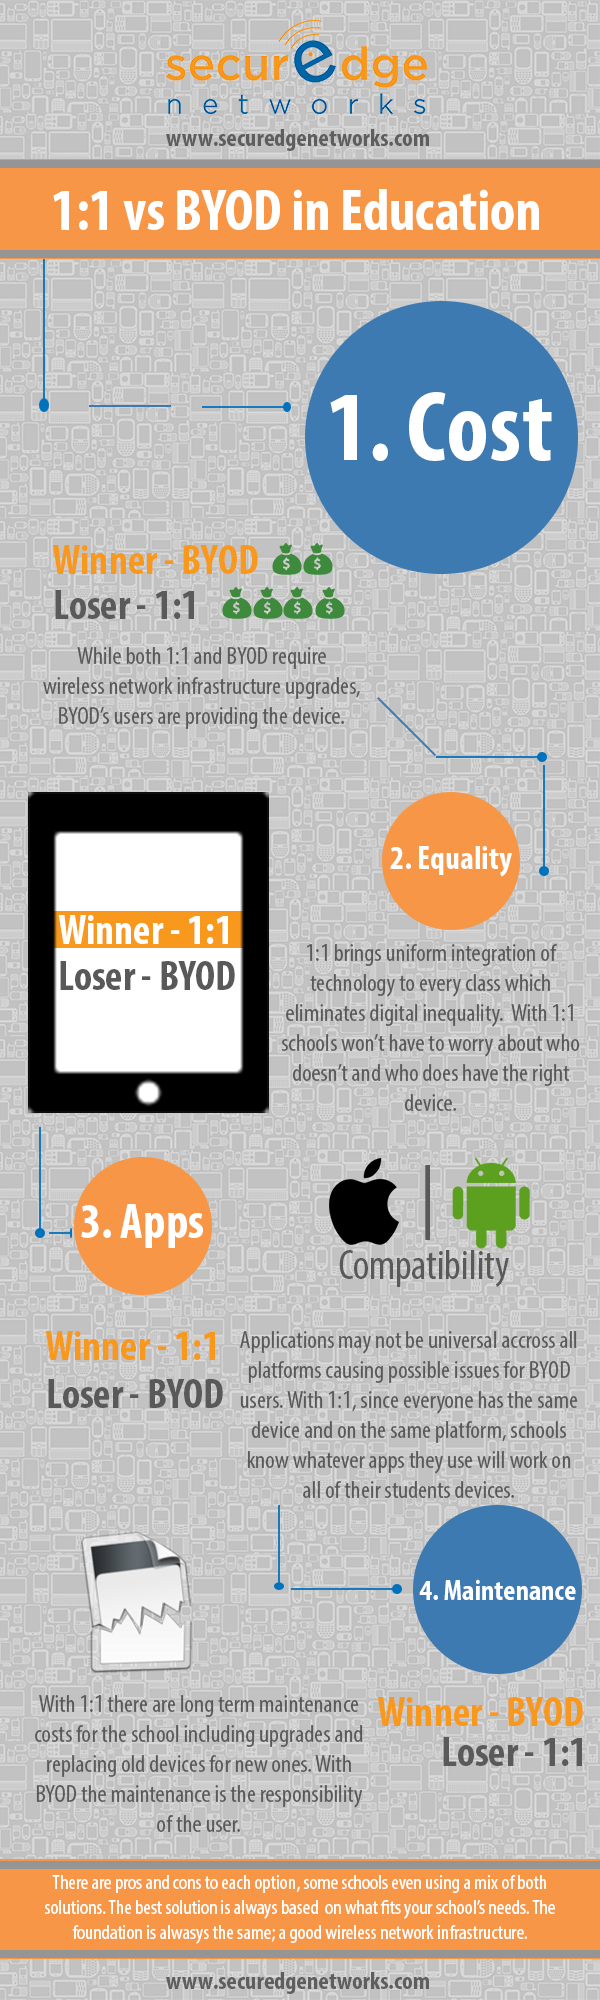 1:1 or BYOD in Schools? Which is Better for You [Infographic]